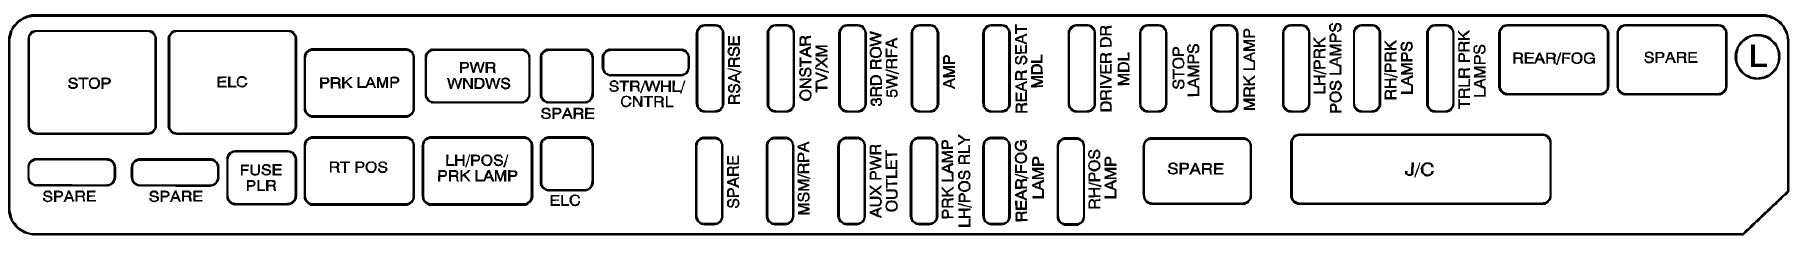 cadillac srx 2008 fuse box diagram auto genius rh autogenius info cadillac srx fuse box for tailgate 2010 cadillac srx fuse box location